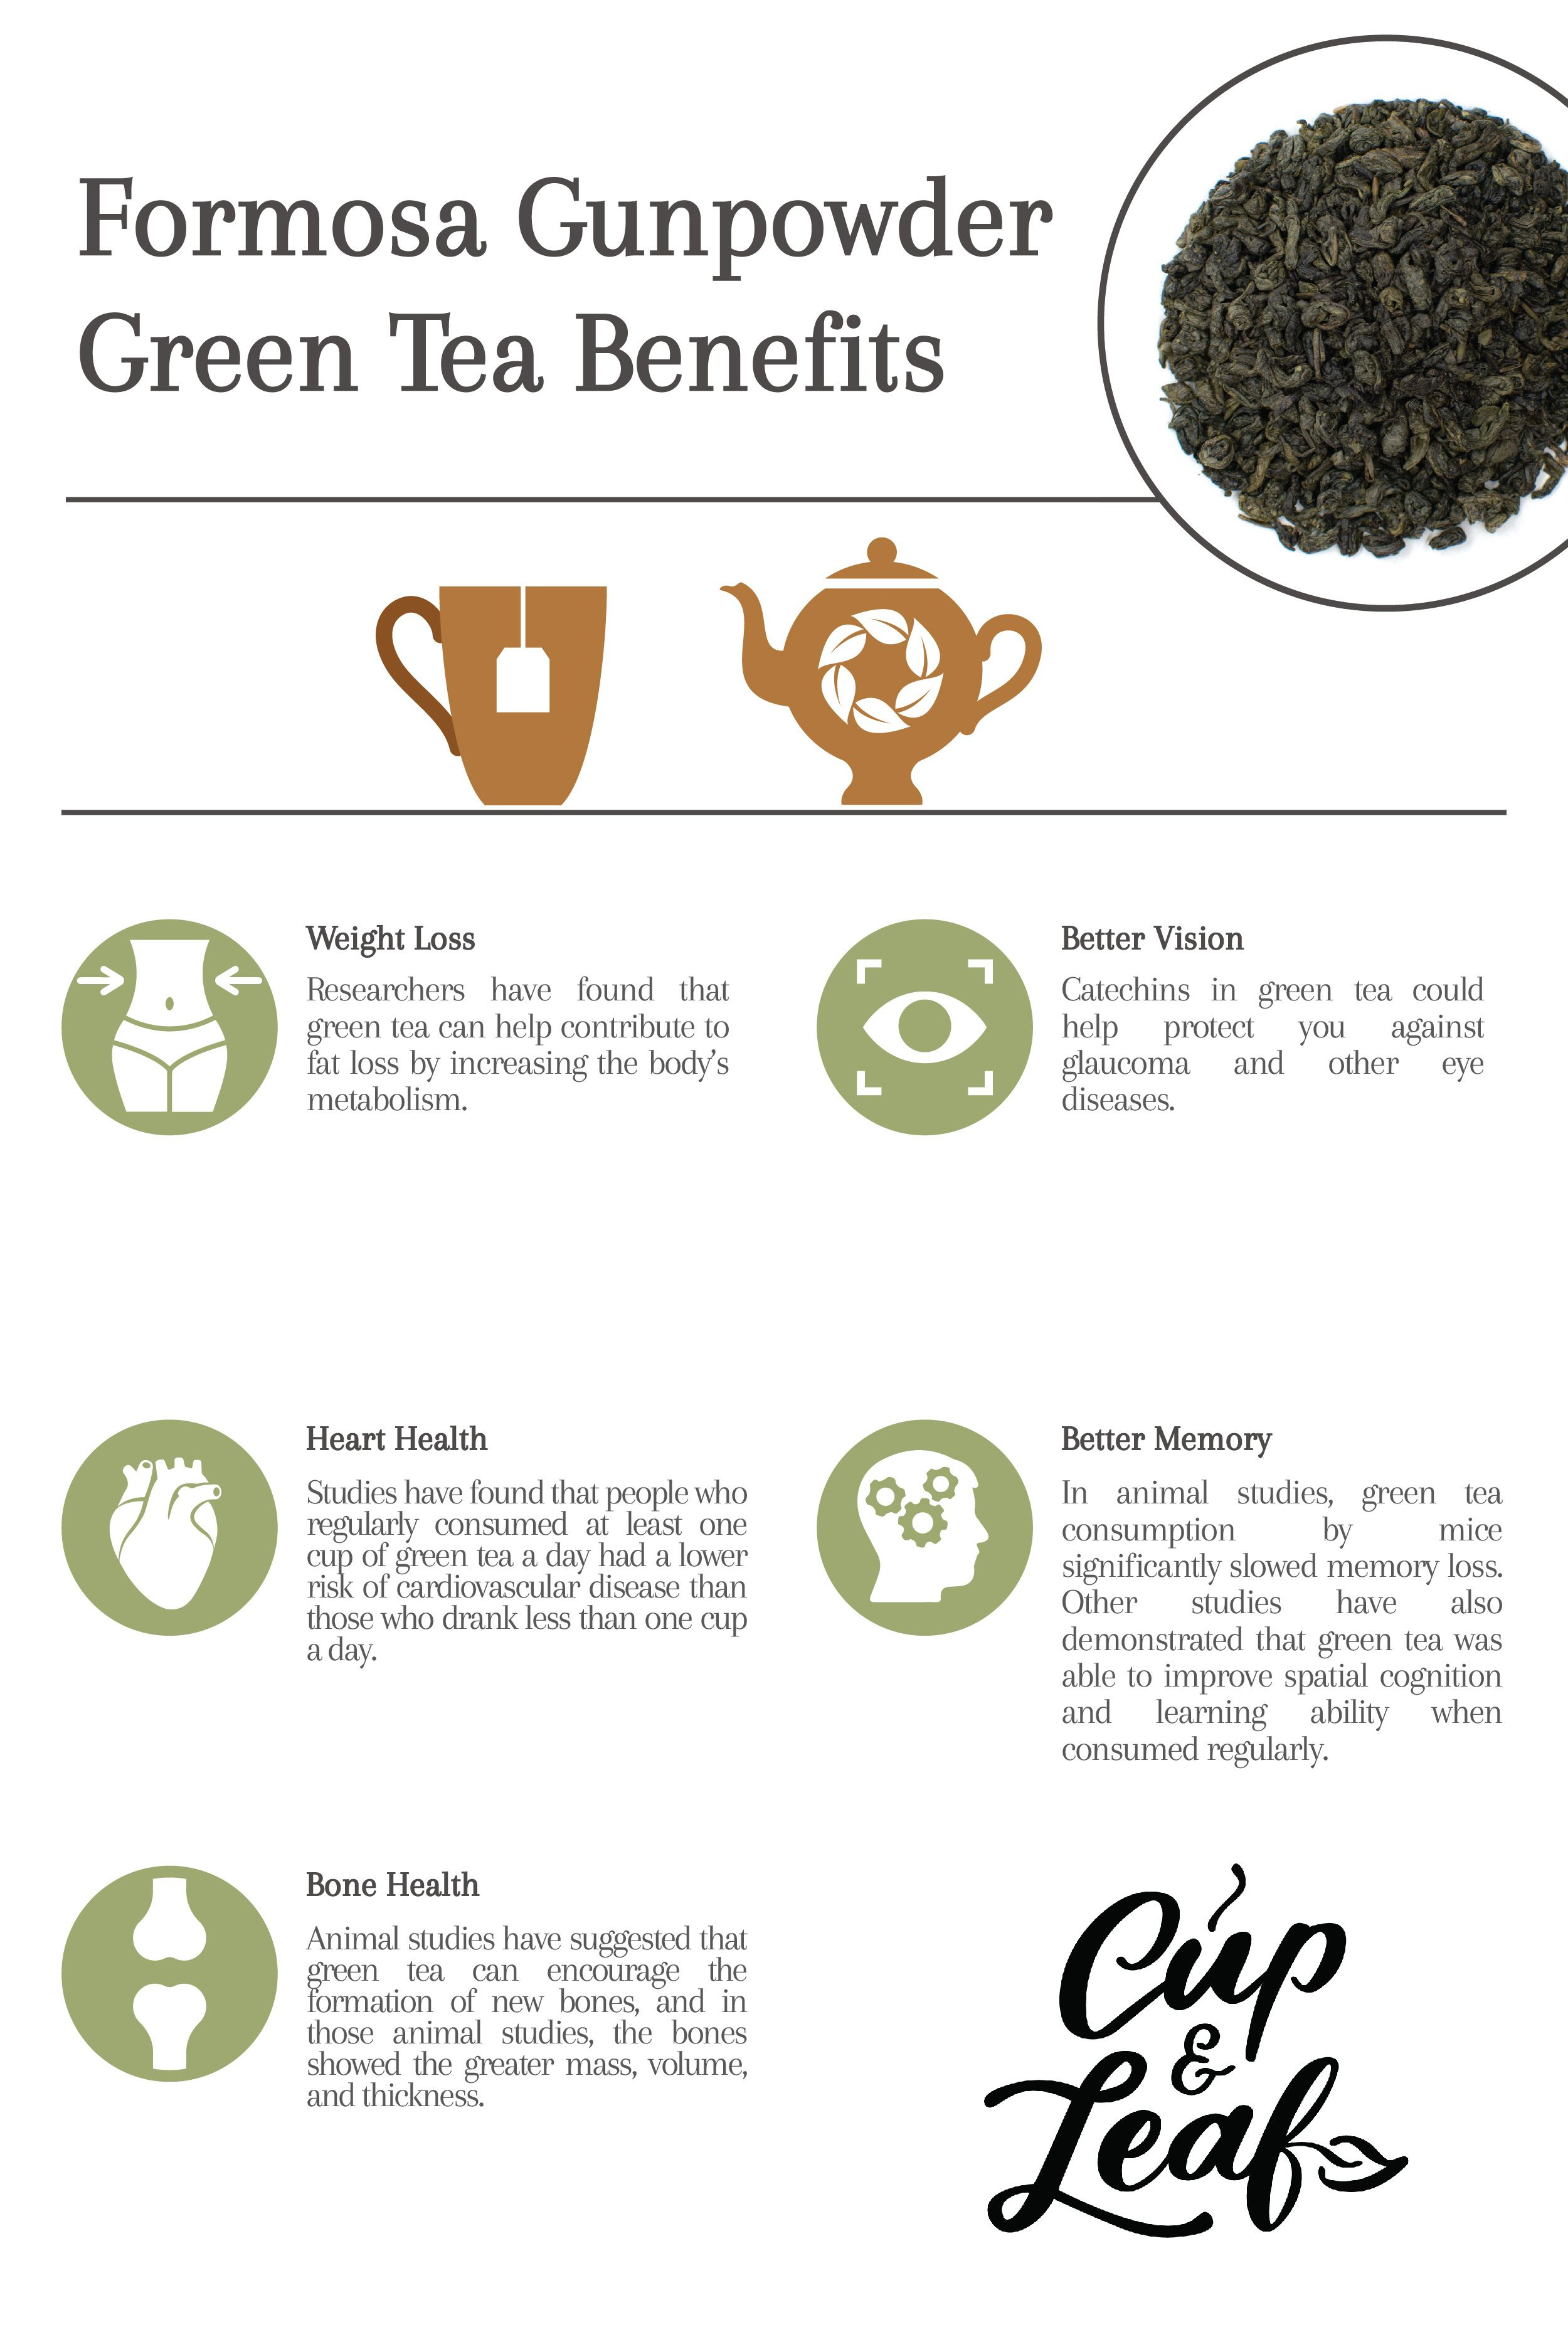 gunpowder green tea | green tea benefits, gunpowder green